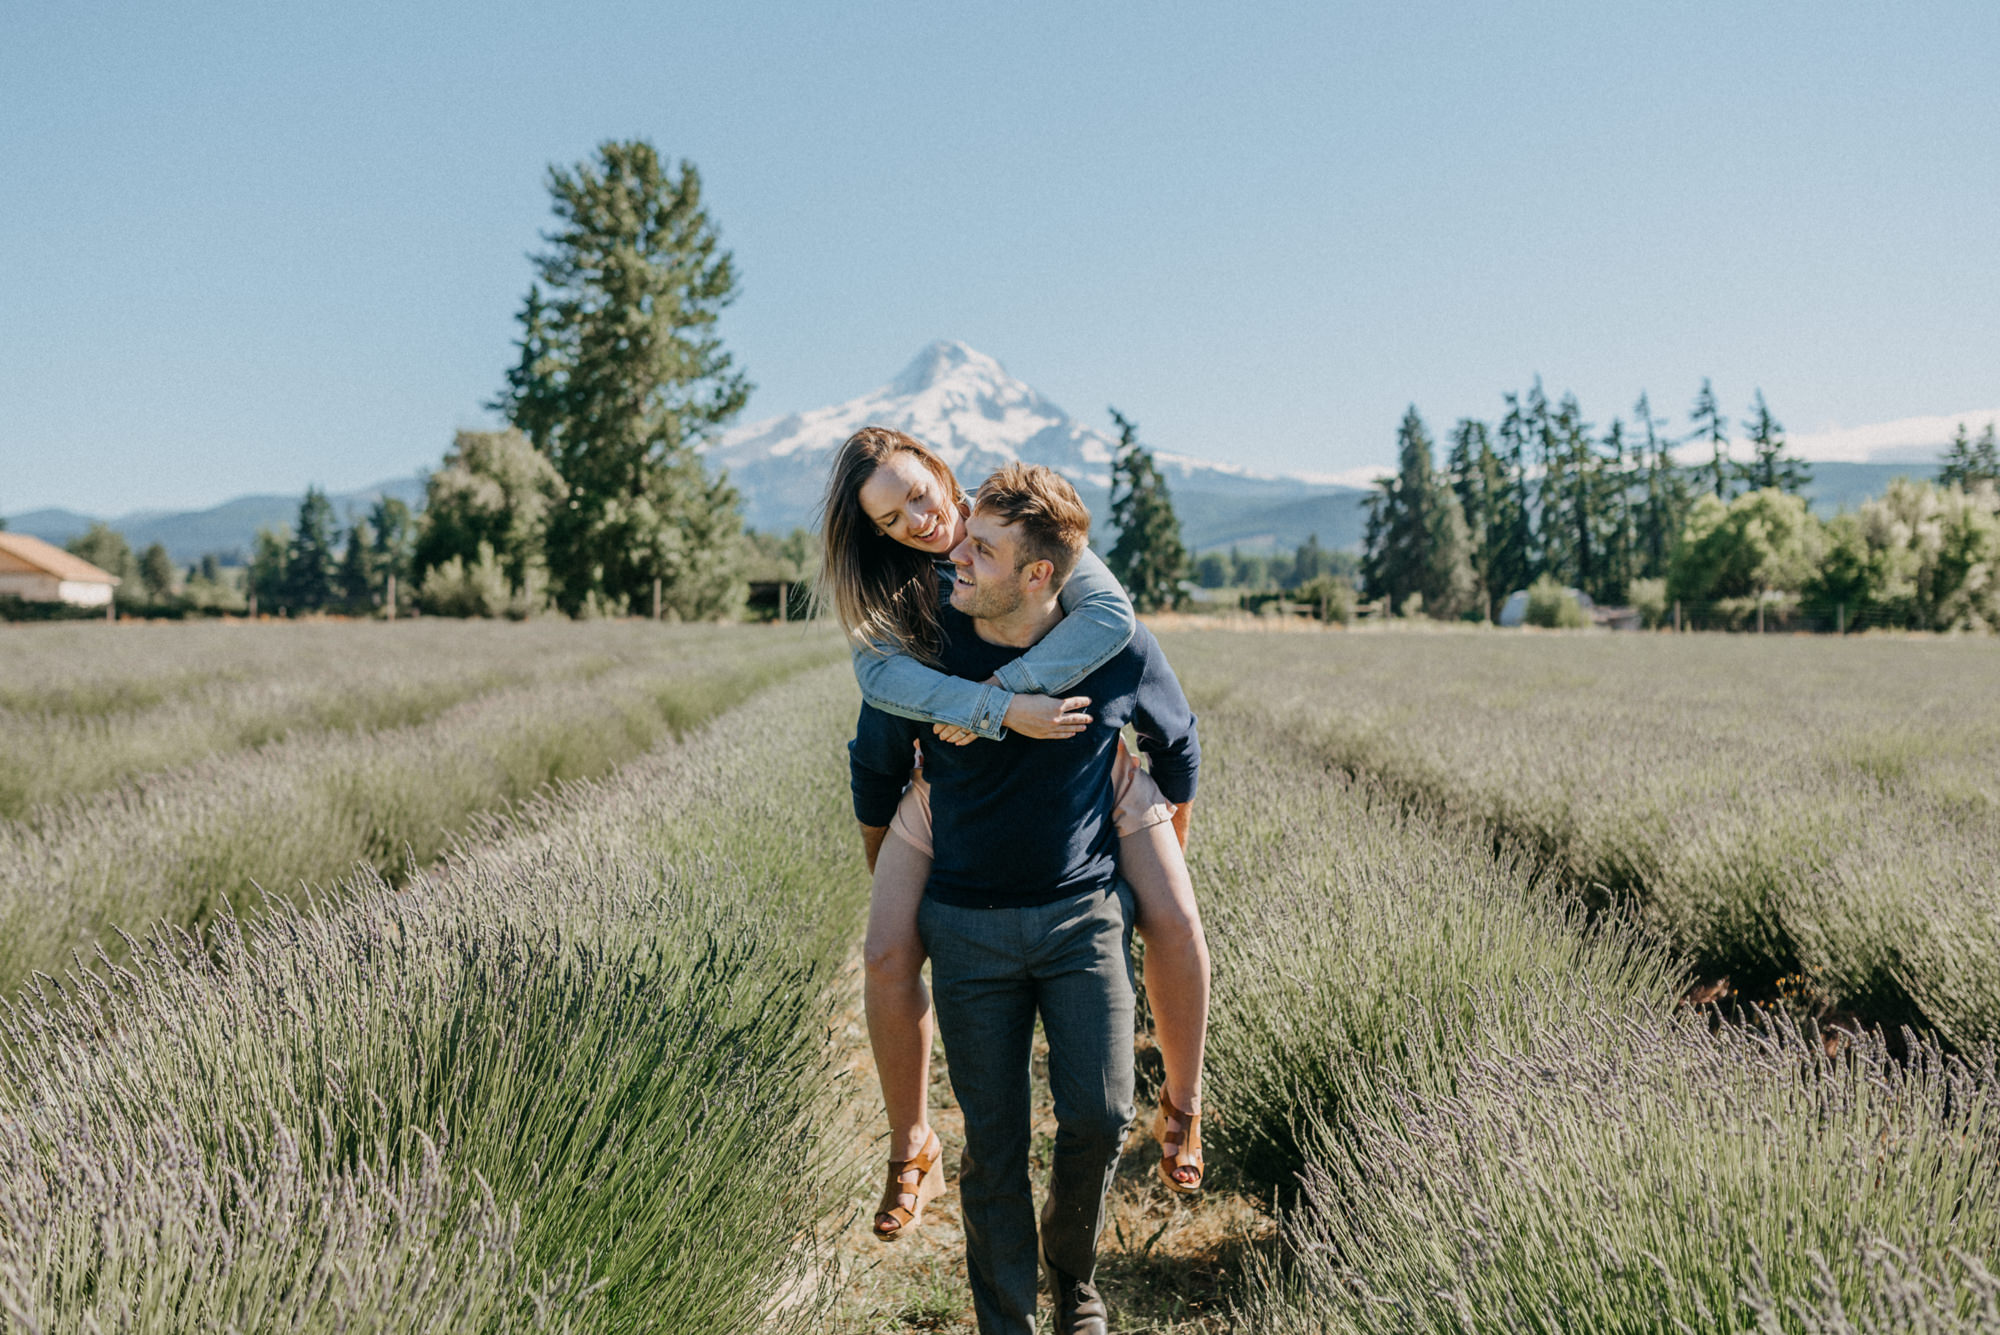 32-Mt-hood-lavender-farms-engagment-couple-summer-7818.jpg